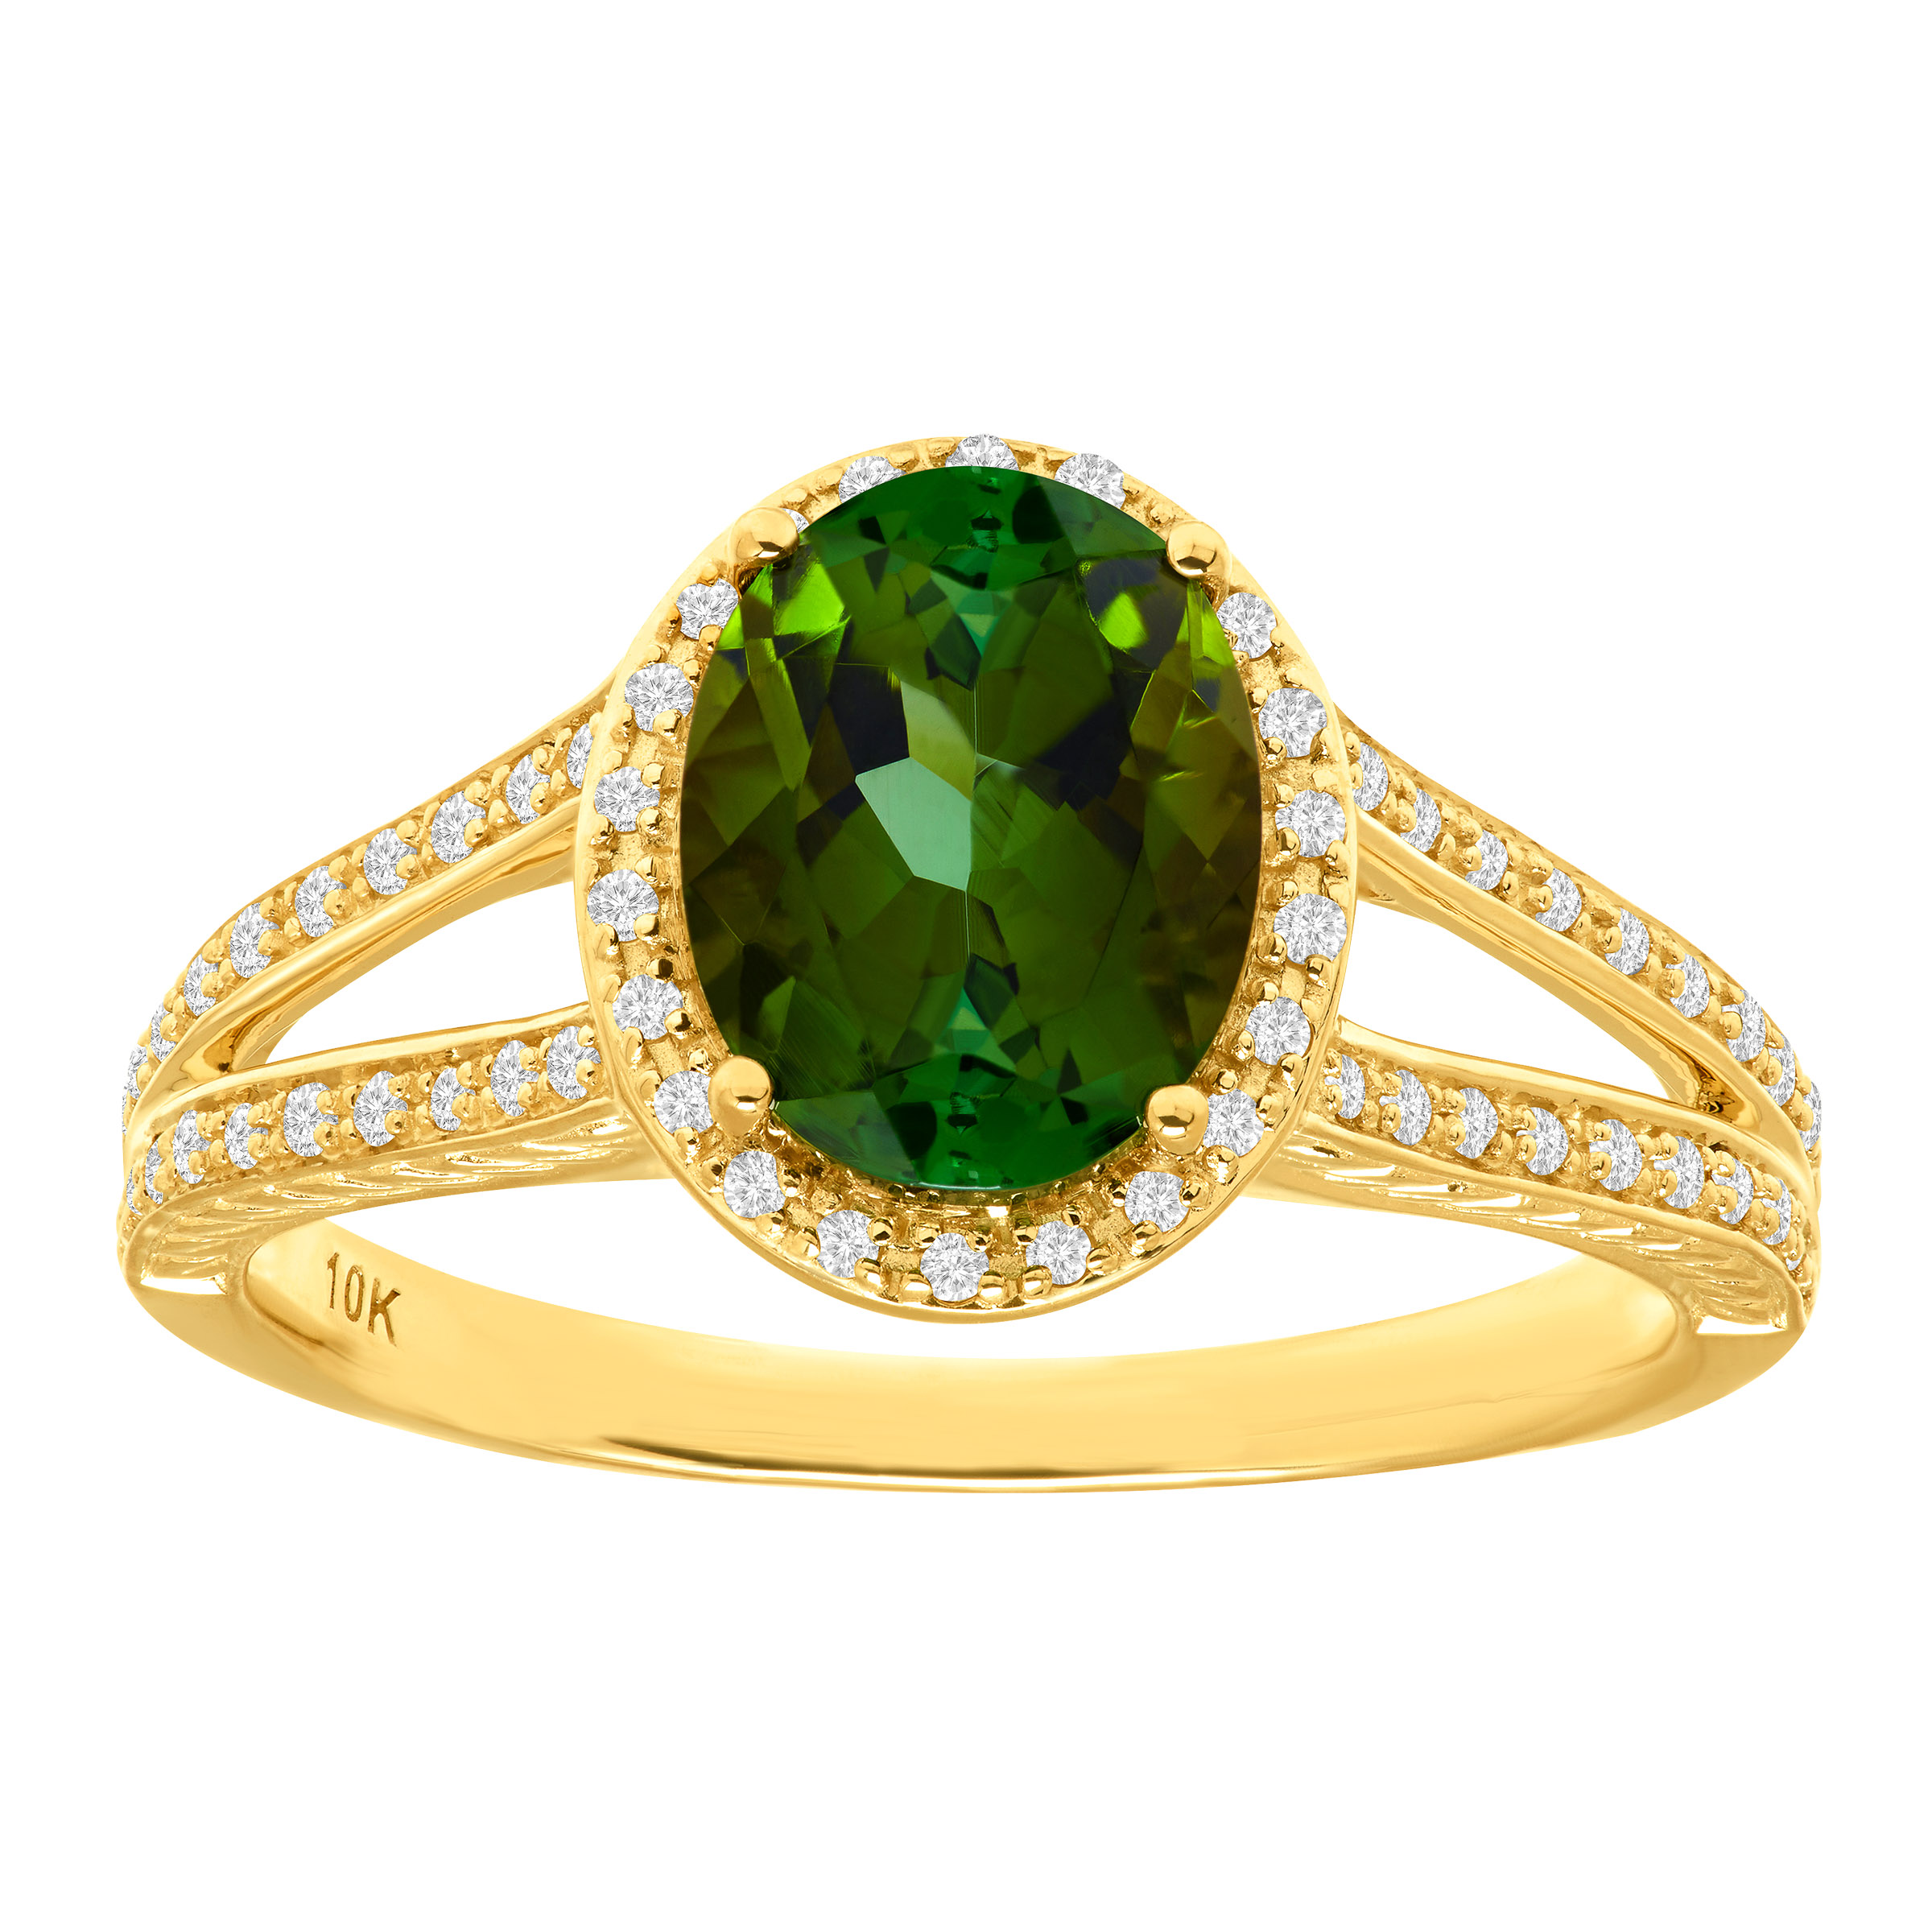 1 3 4 ct Natural Green Tourmaline & 1 5 ct Diamond Ring in 10kt Gold by Richline Group